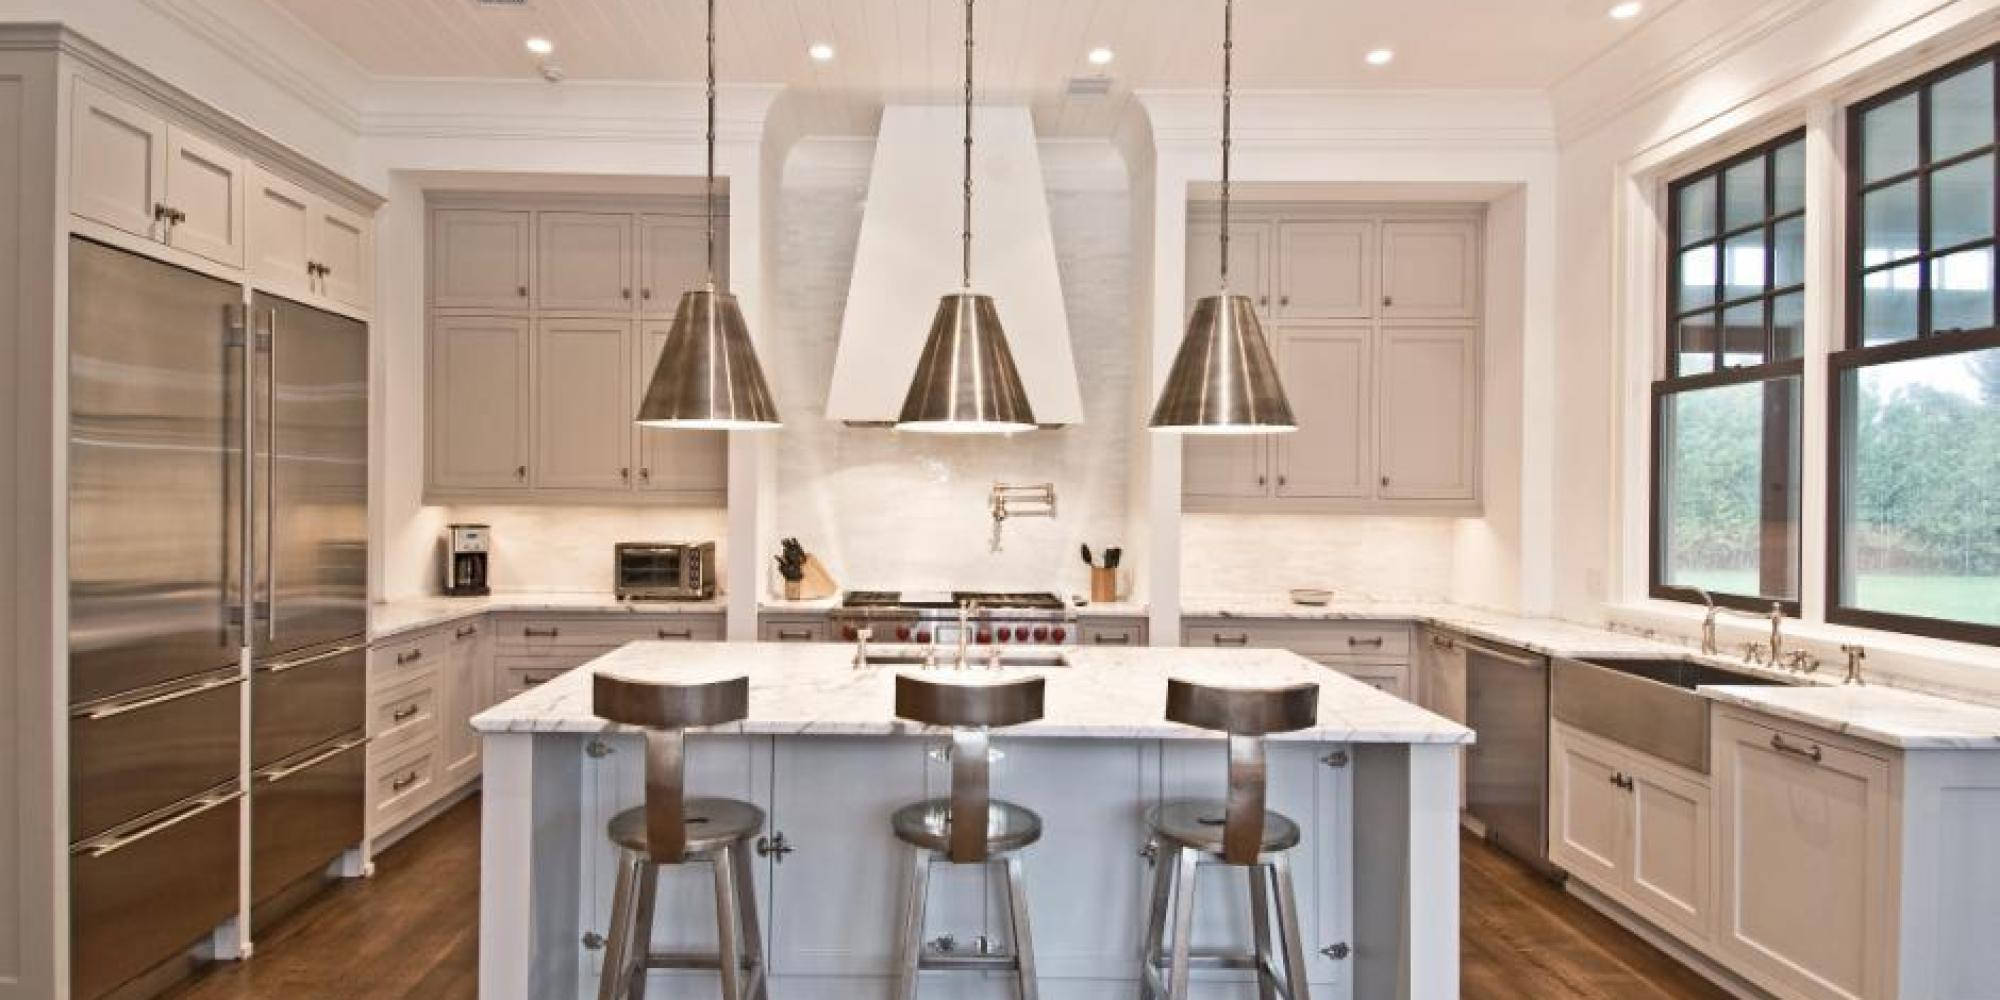 For Kitchen Paint Colors The Best Paint Colors For Every Type Of Kitchen Huffpost